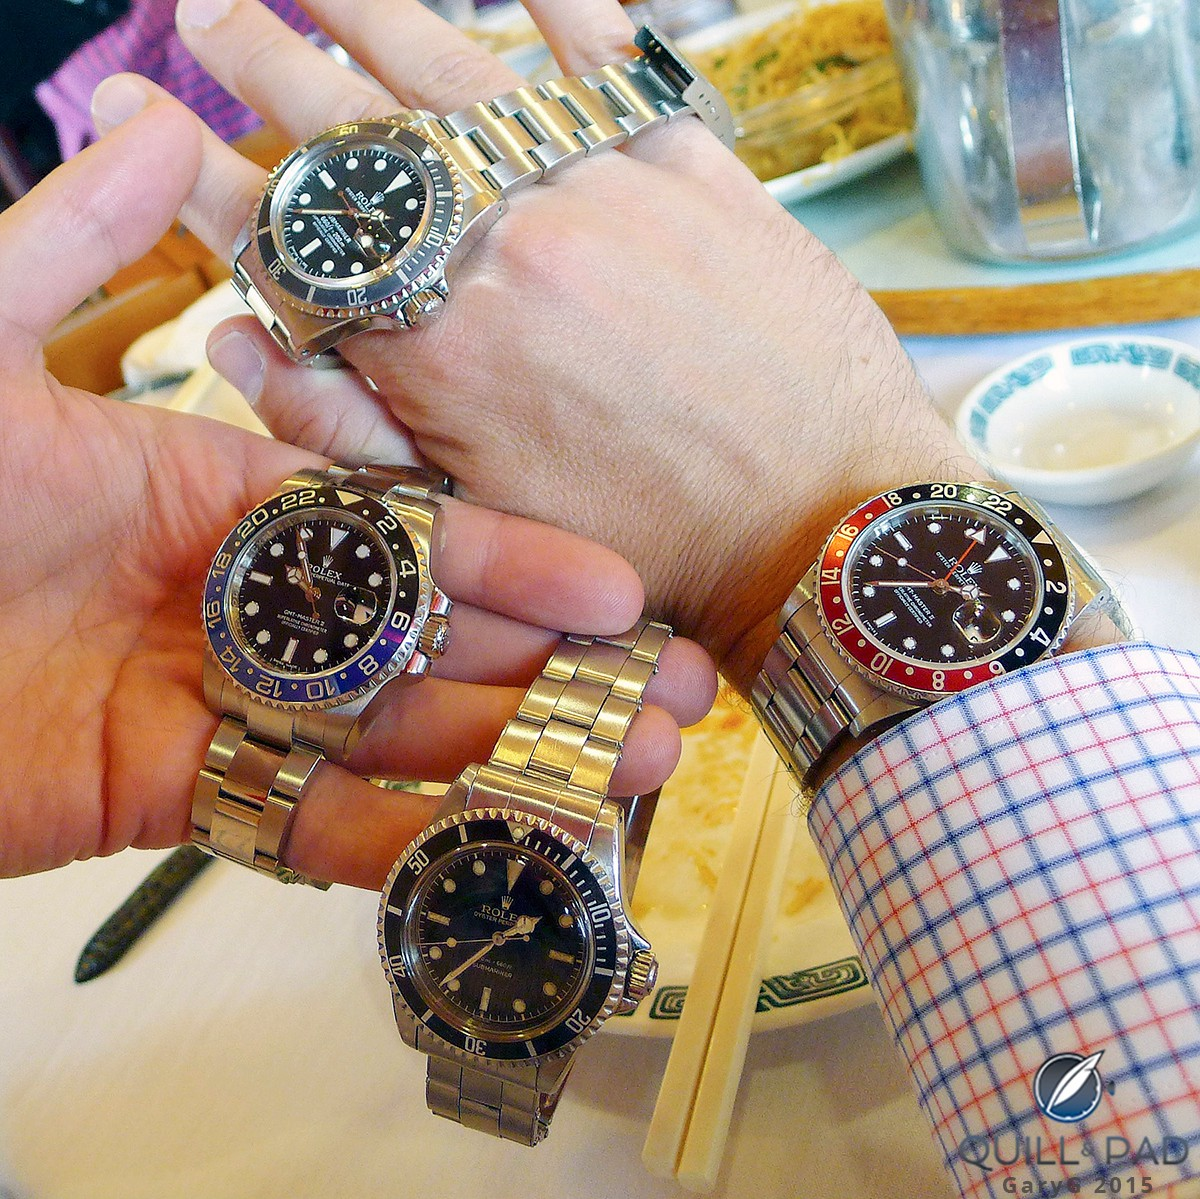 Some friends' Rolexes as seen at a recent group lunch